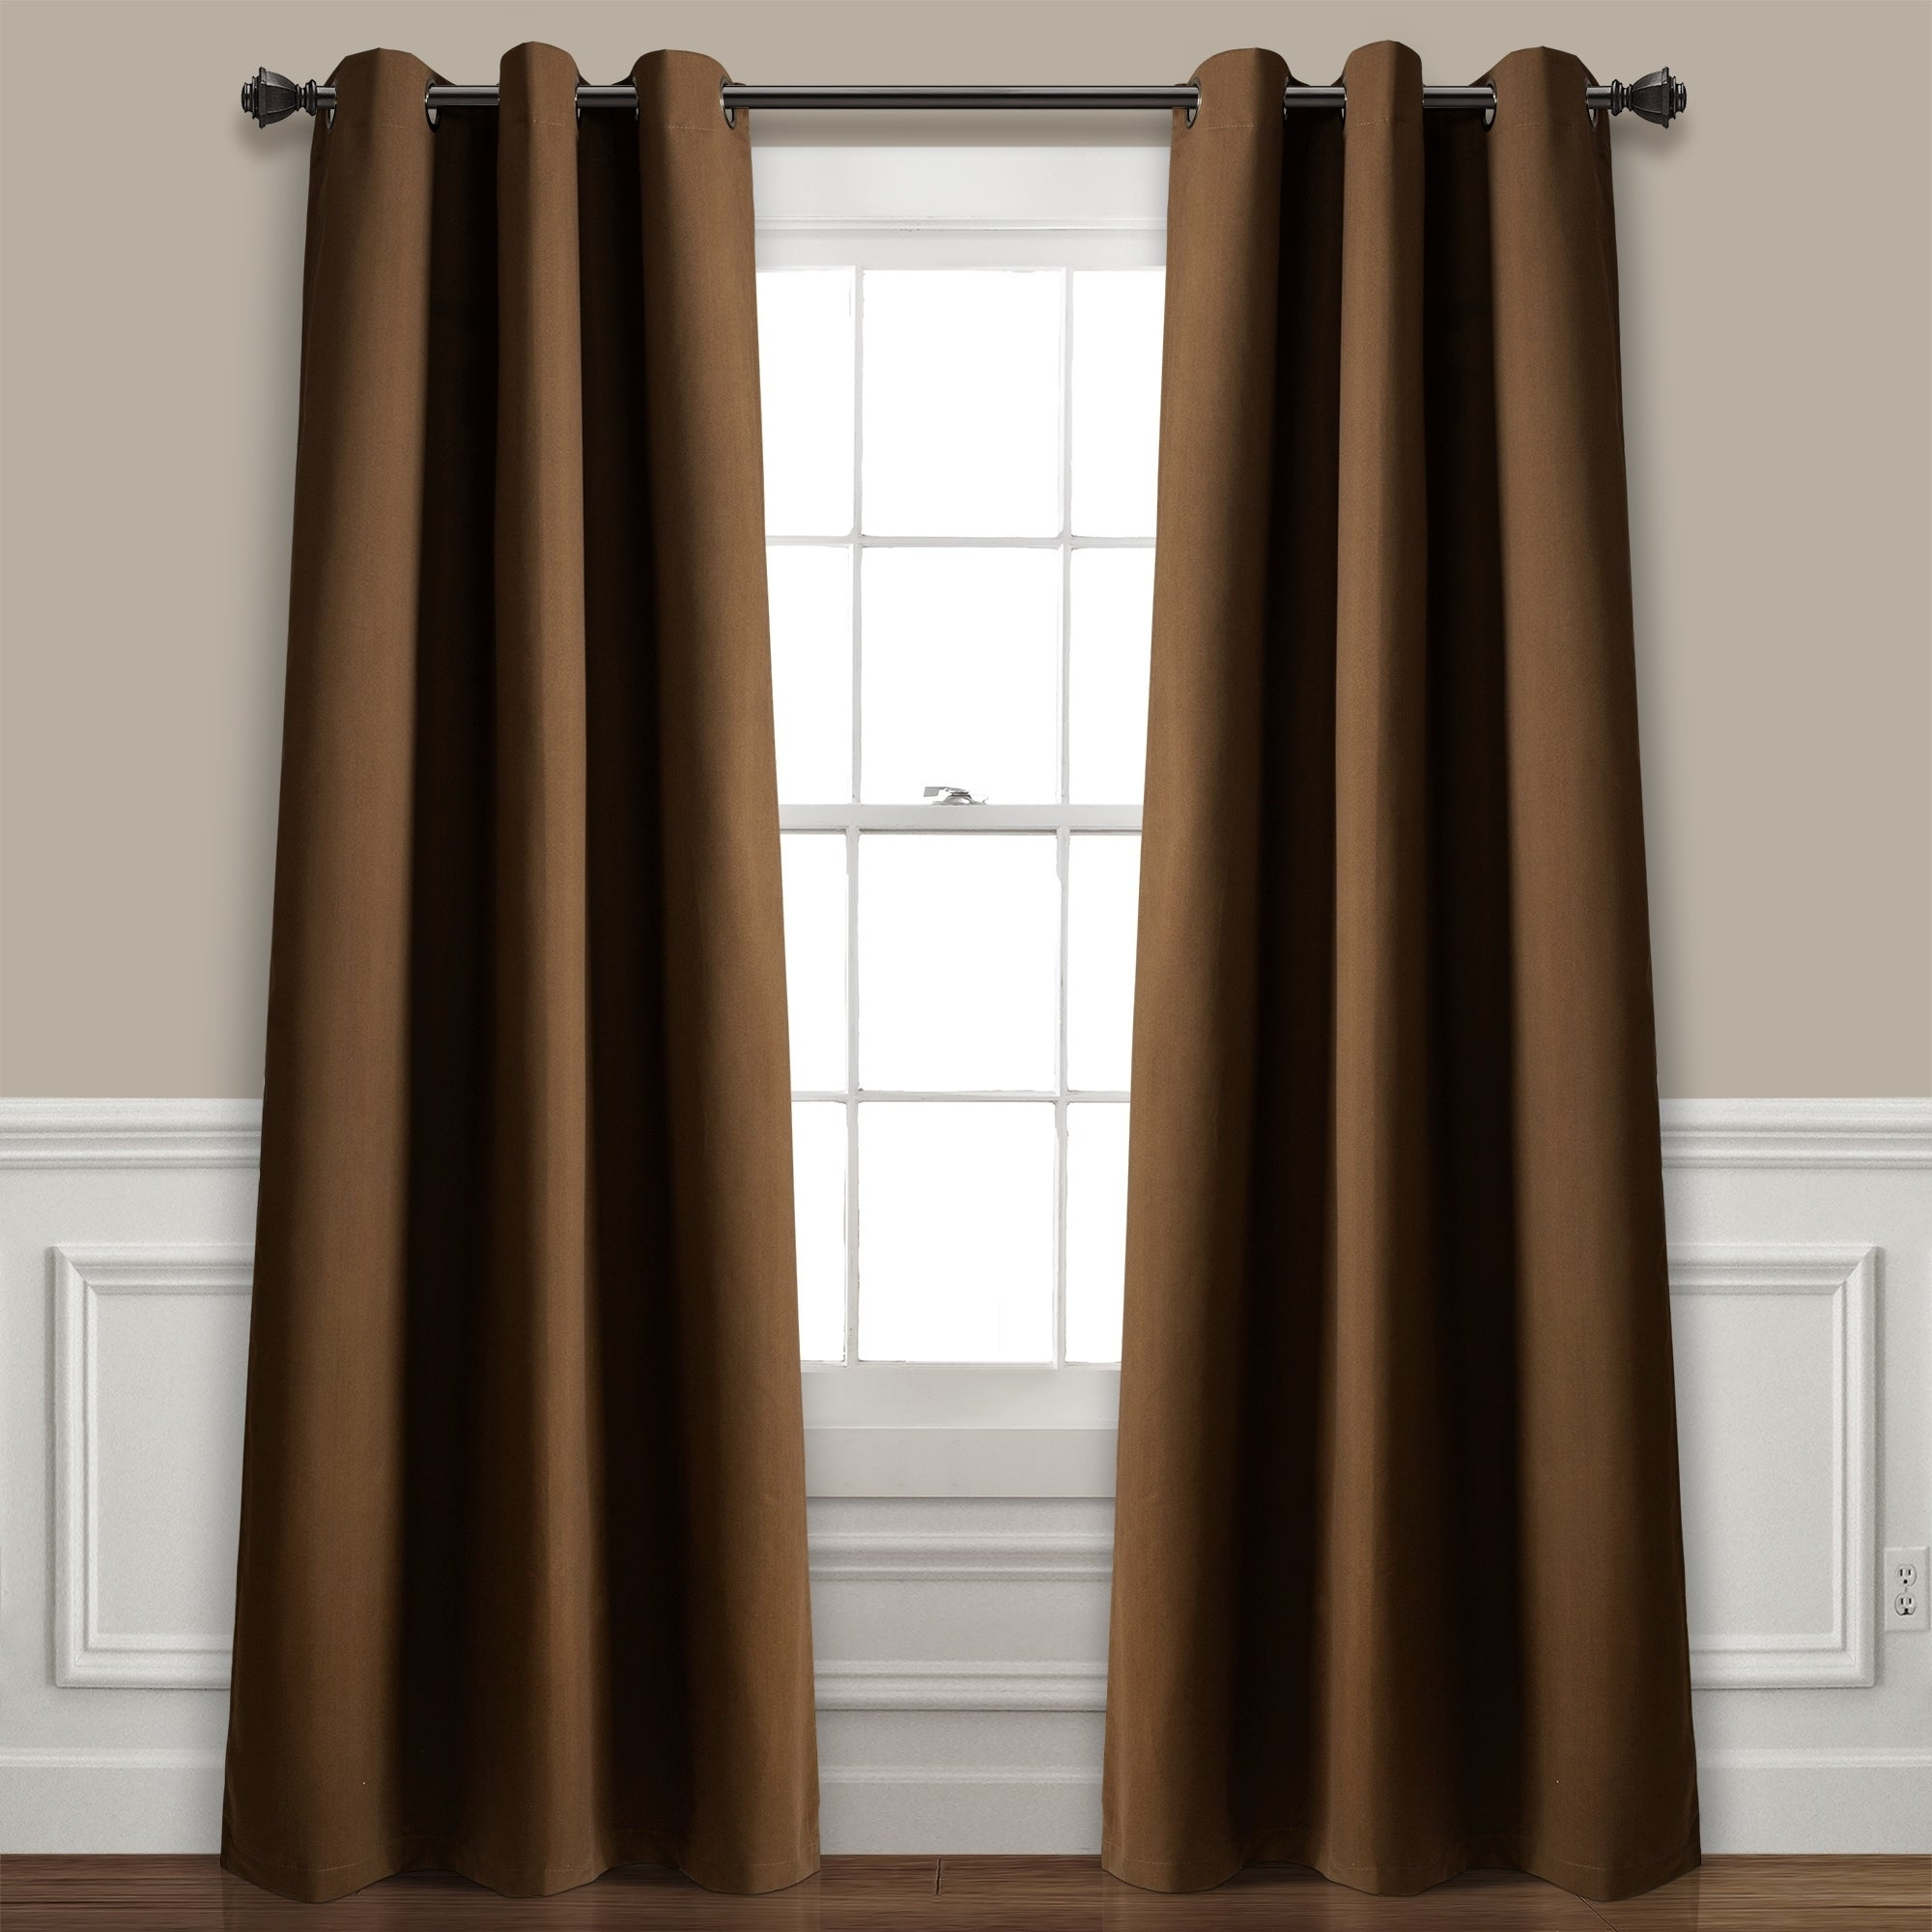 Lush Decor Absolute Blackout Window Curtain Panel Pair Within Well Known All Seasons Blackout Window Curtains (View 15 of 20)